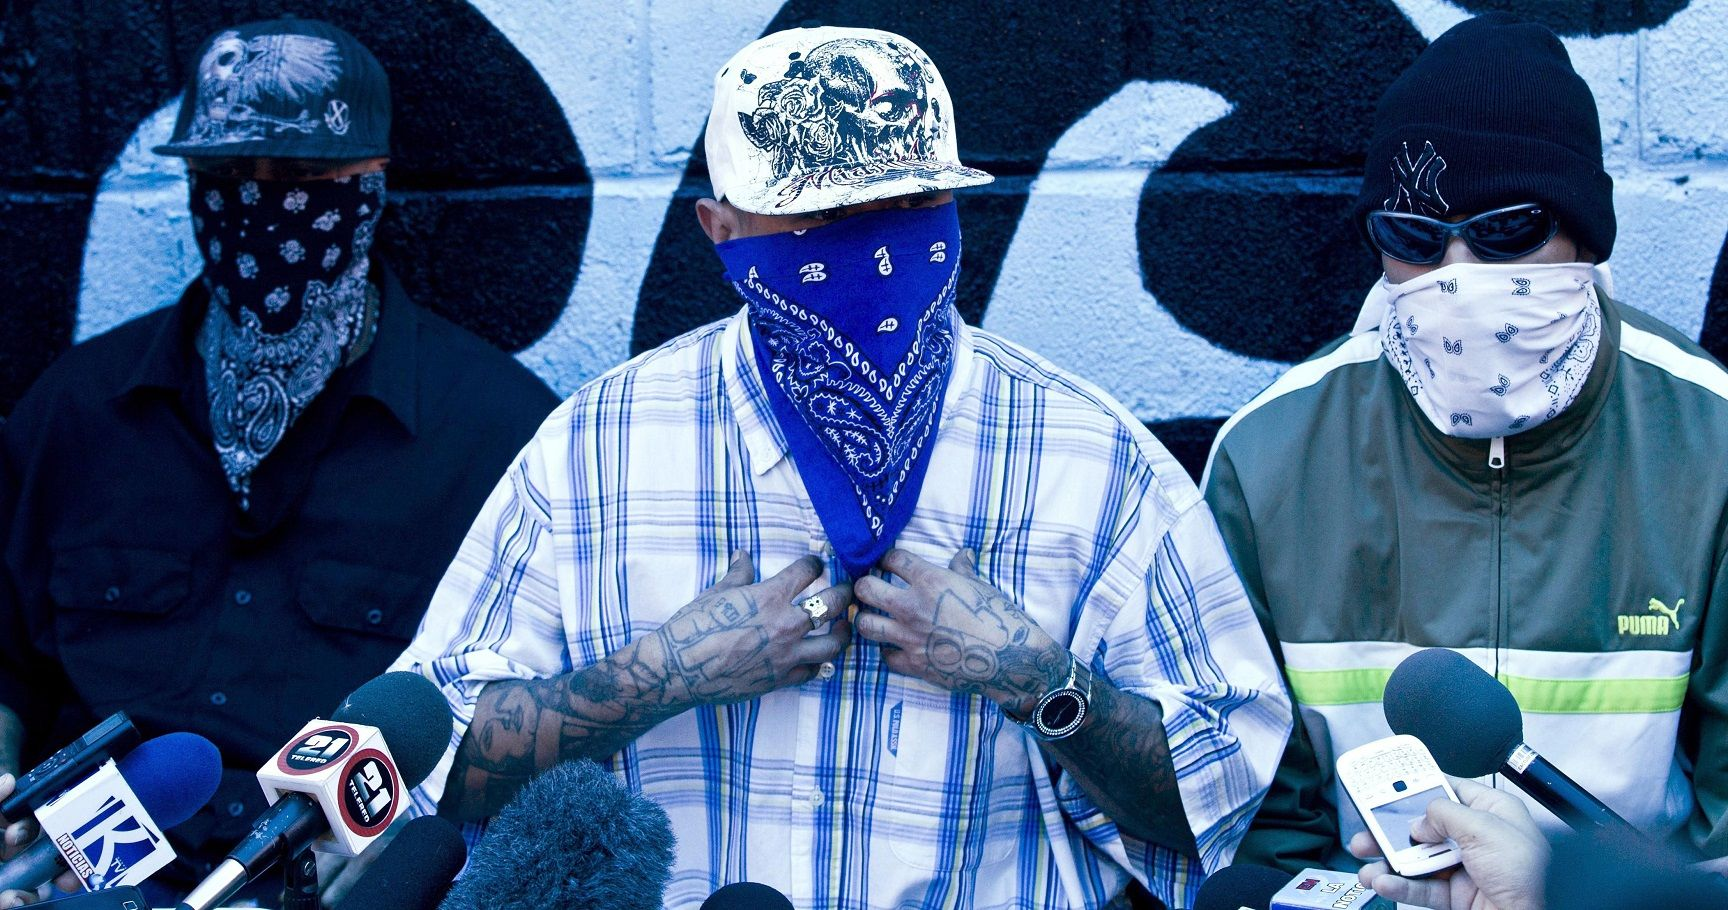 an analysis of gang violence in america Gun violence is most common in poor urban areas and frequently associated with gang violence gun violence in america analysis of the.